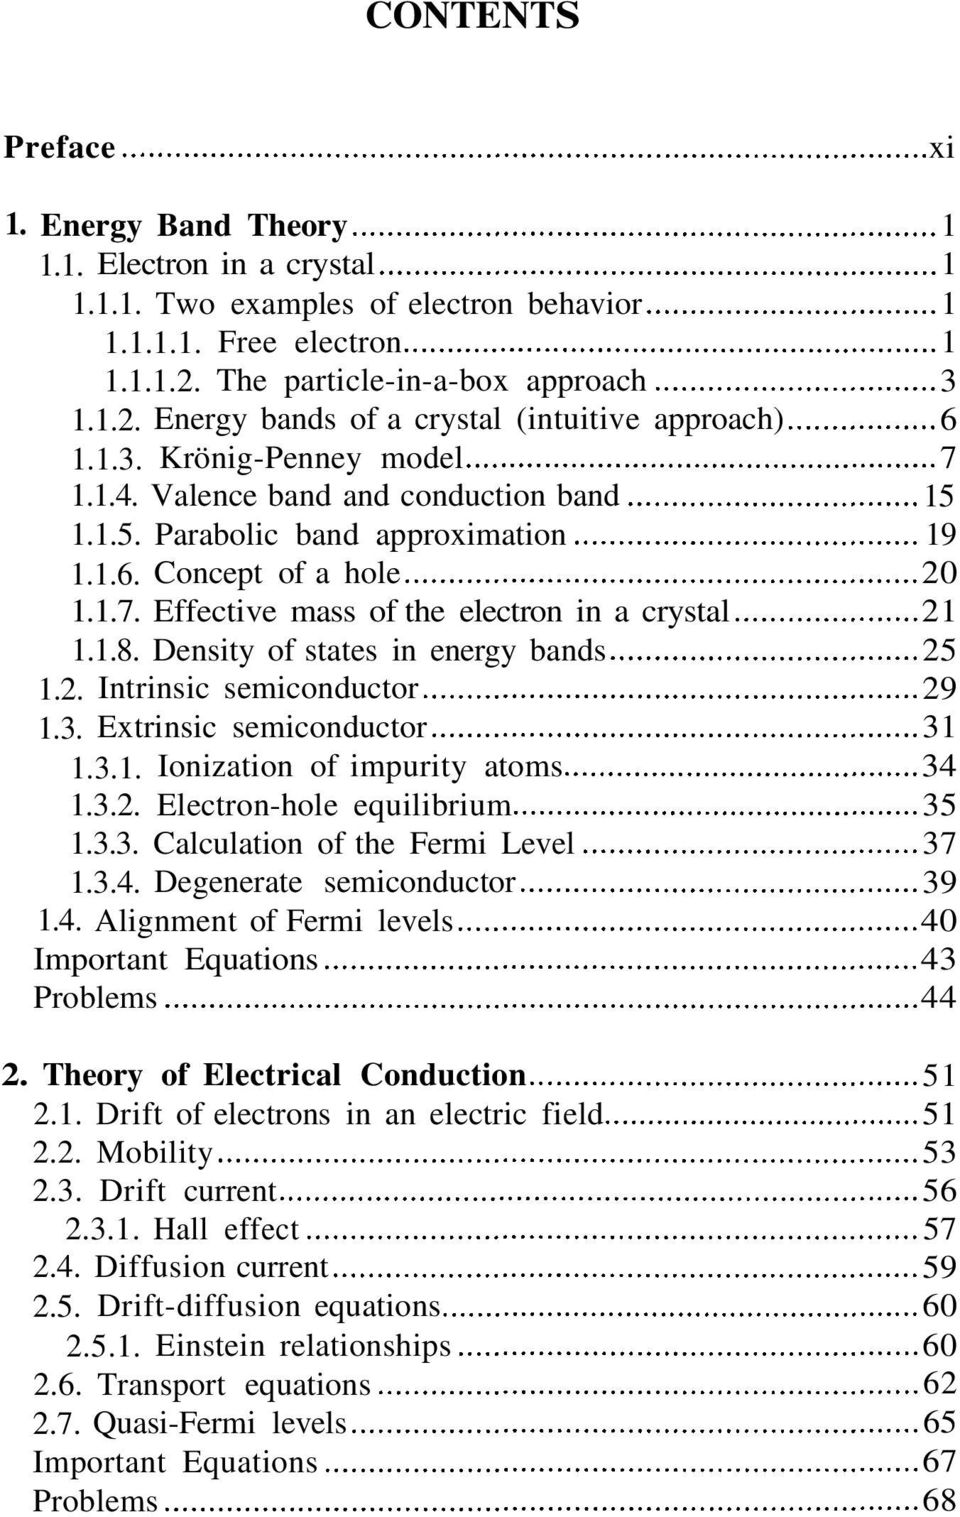 Density of states in energy bands.2. Intrinsic semiconductor.3. Extrinsic semiconductor Ionization of impurity atoms Electron-hole equilibrium Calculation of the Fermi Level Degenerate semiconductor.